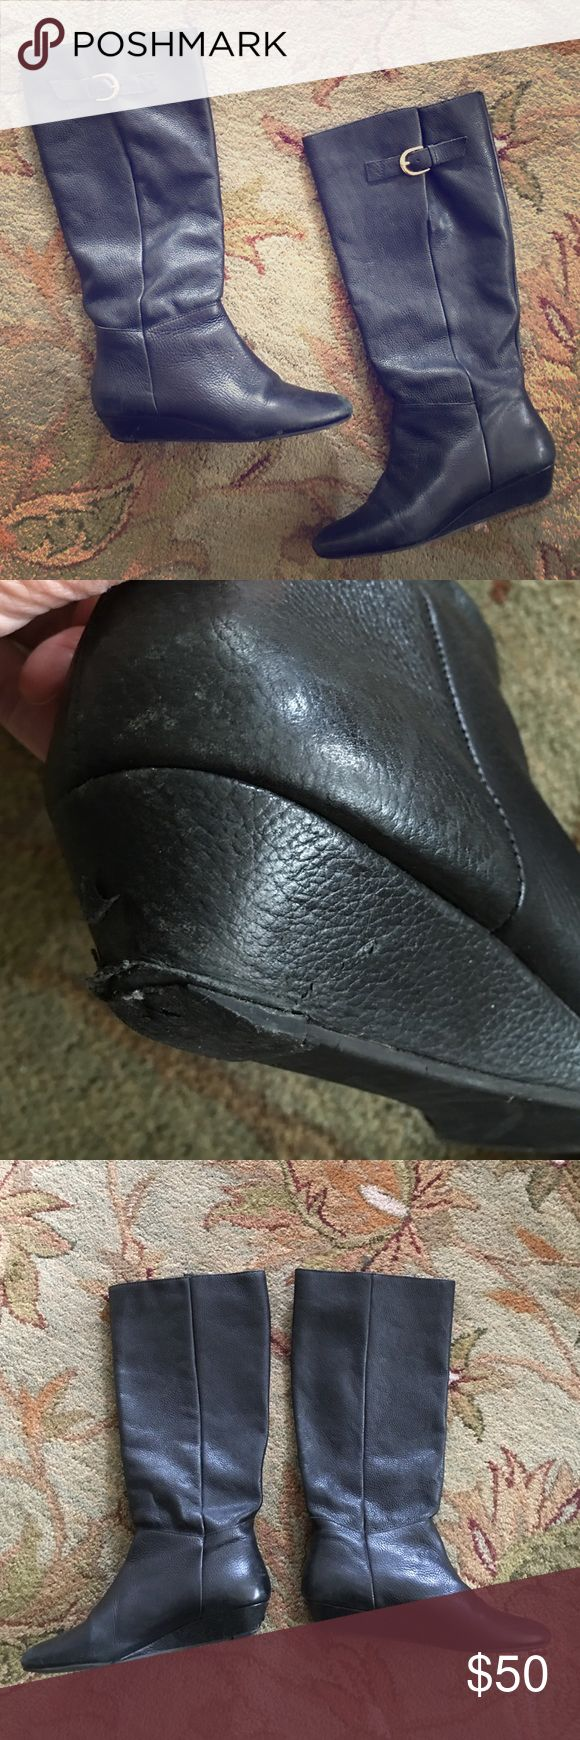 Size 7 Steve Madden INTYCE black leather boots 🌑 Size 7 Steve Madden INTYCE black leather boots 🌑 they do have some wear on the heel but they still look great and still have so much love to give! I bought these at Nordstrom for $150. Steve Madden Shoes Heeled Boots